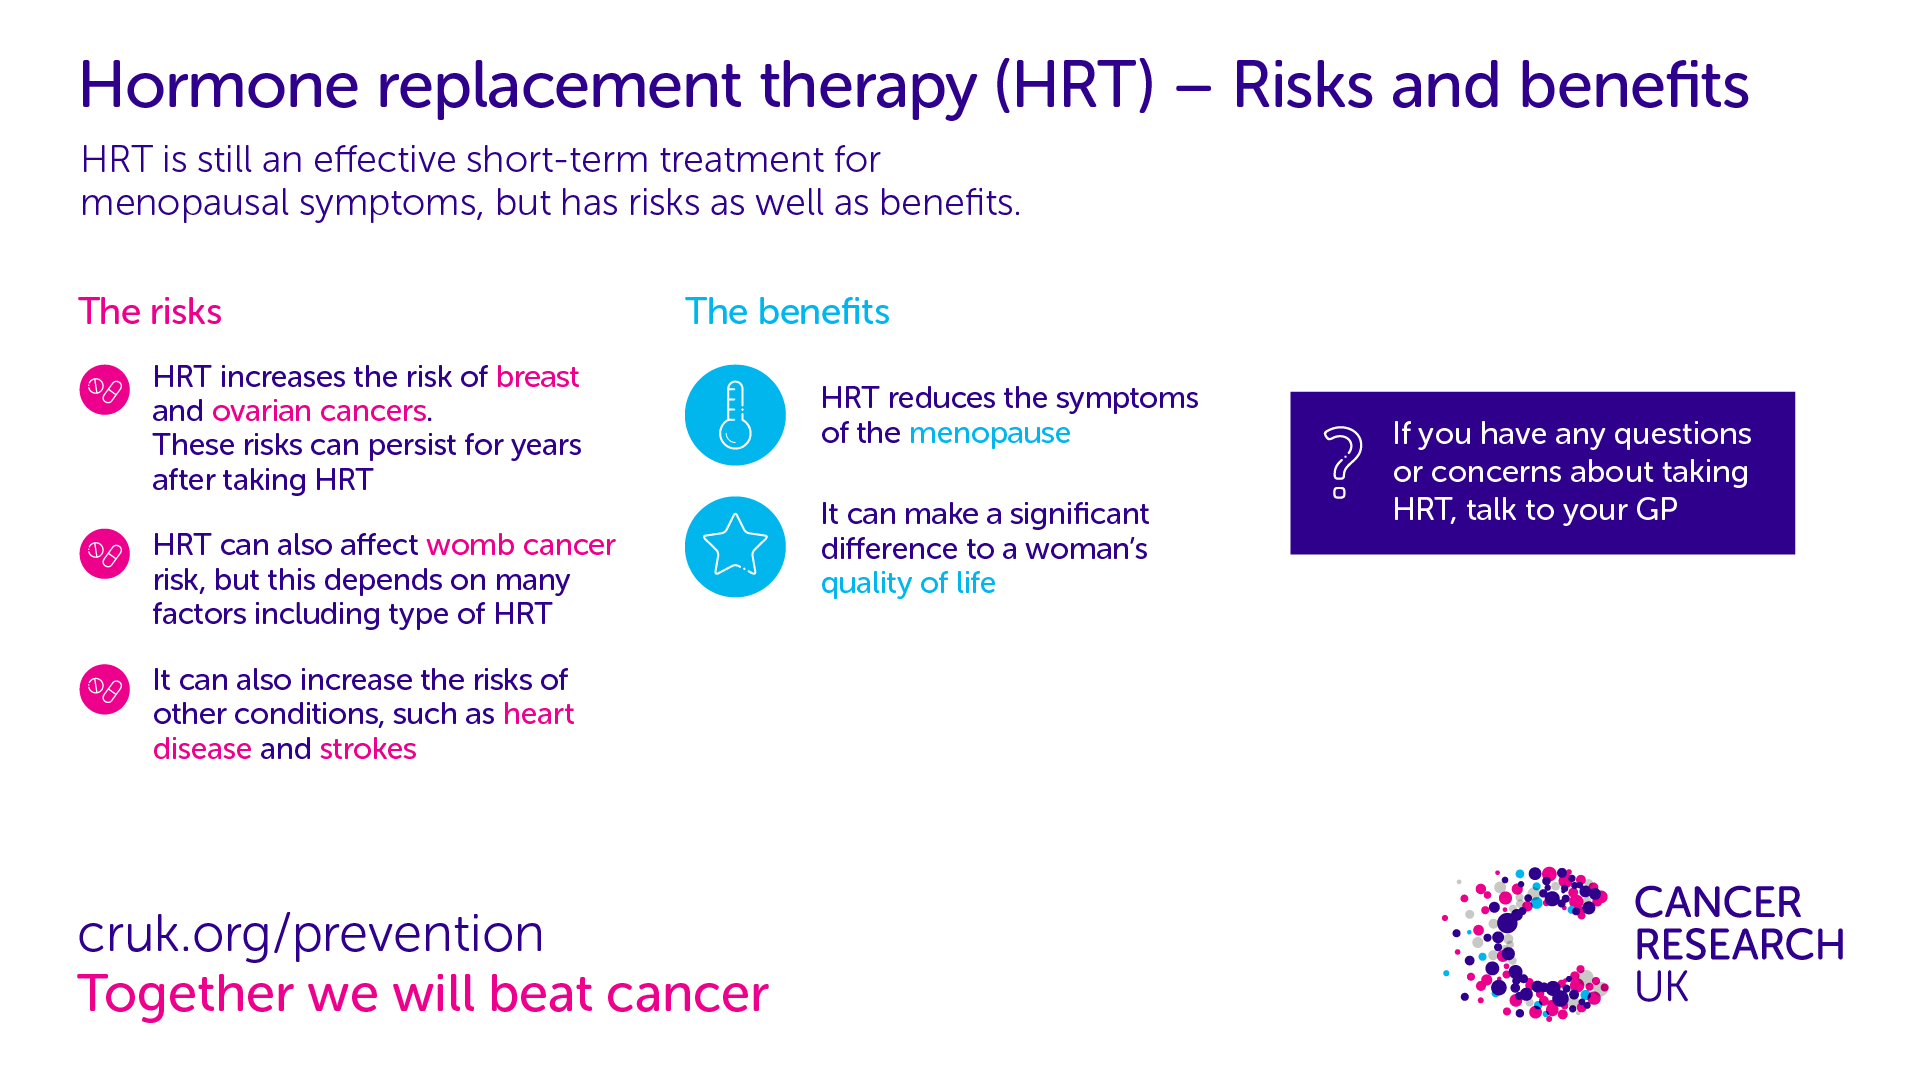 Cancer Research Uk On Twitter Inthenews Hrt And Cancer Risk It S An Effective Treatment For Menopause Symptoms But It Has Risks Such As Increasing The Chance Of Developing Of Breast Cancer If